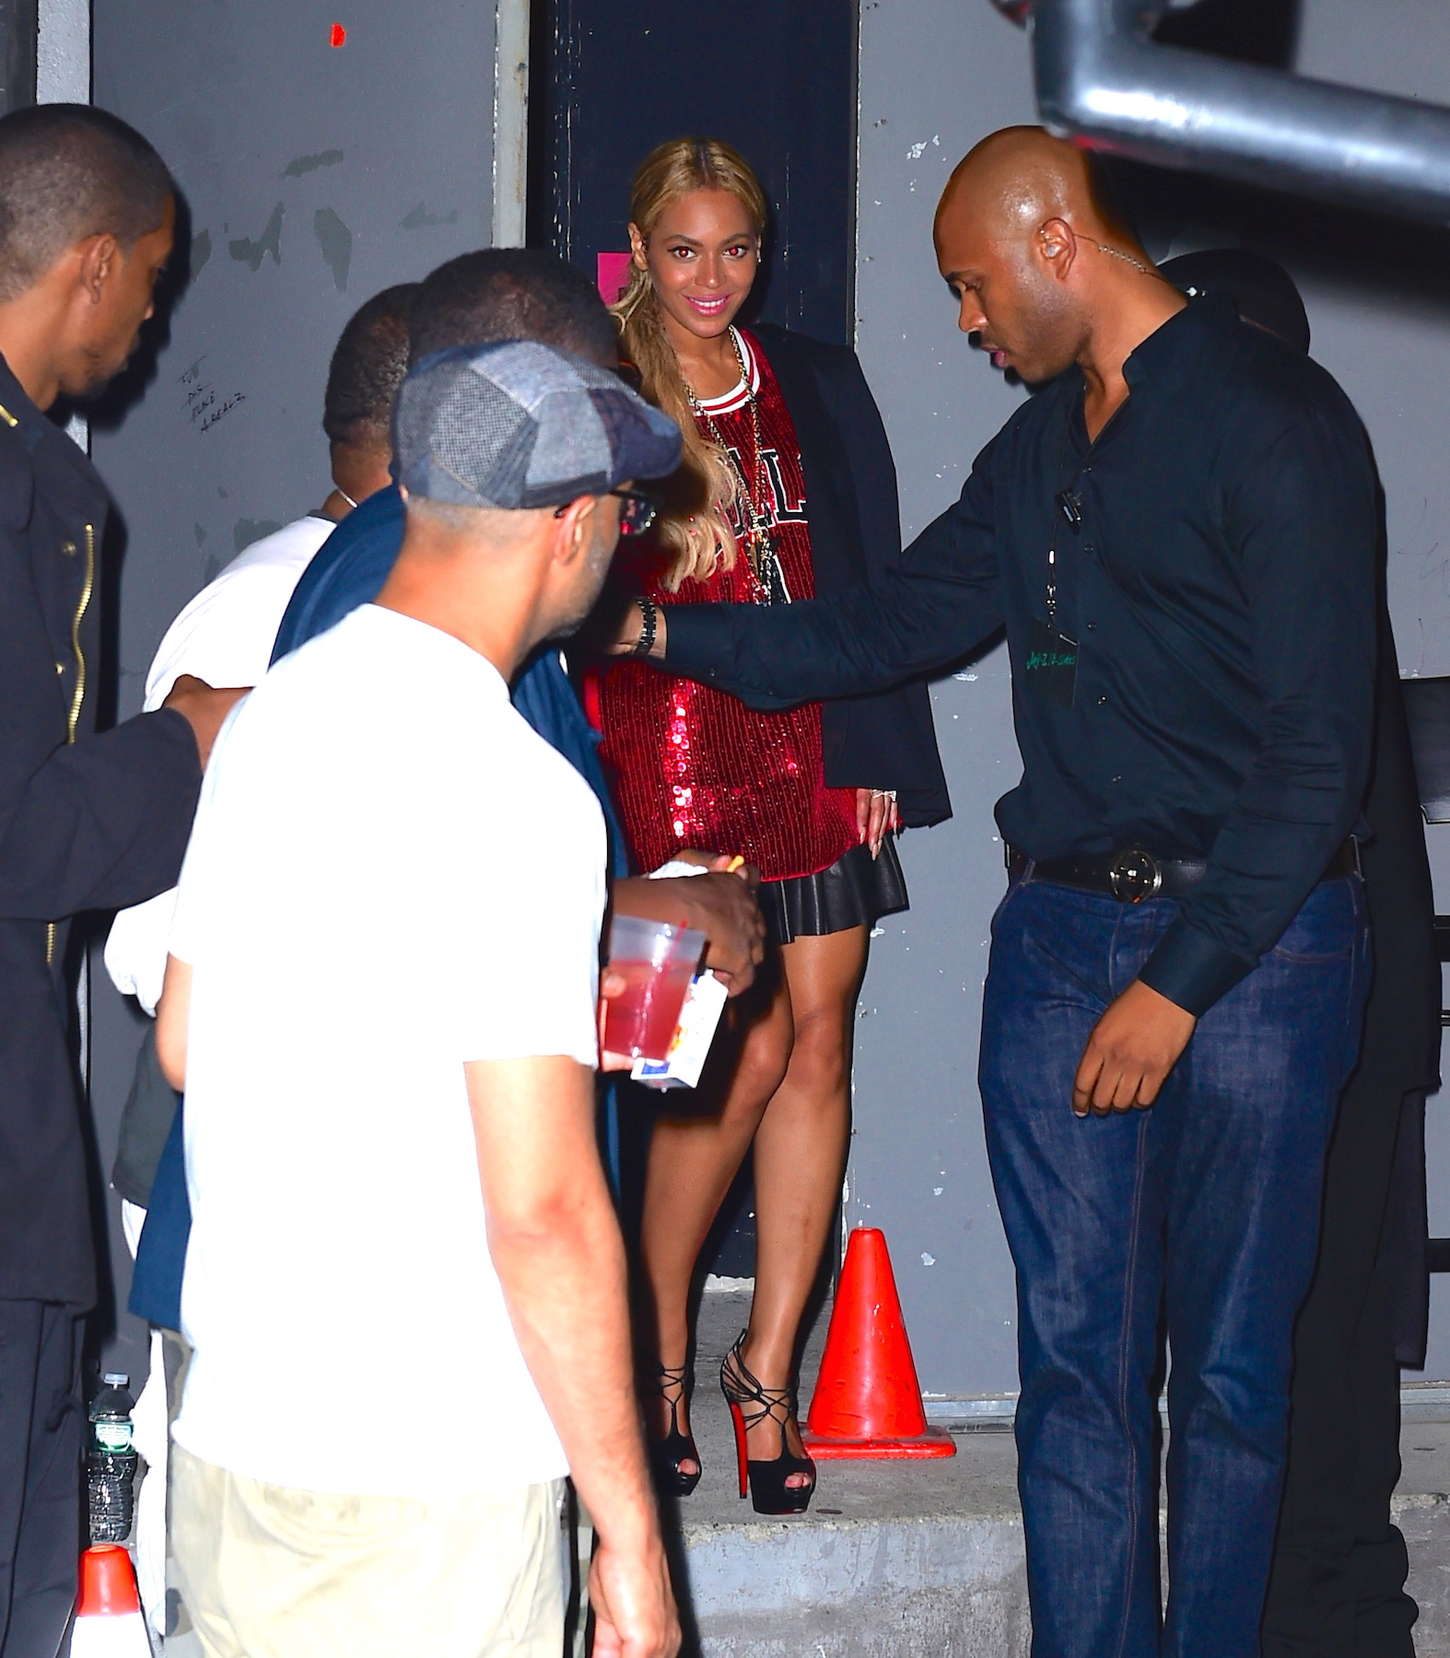 Beyonce leaving Terminal 5 in NYC